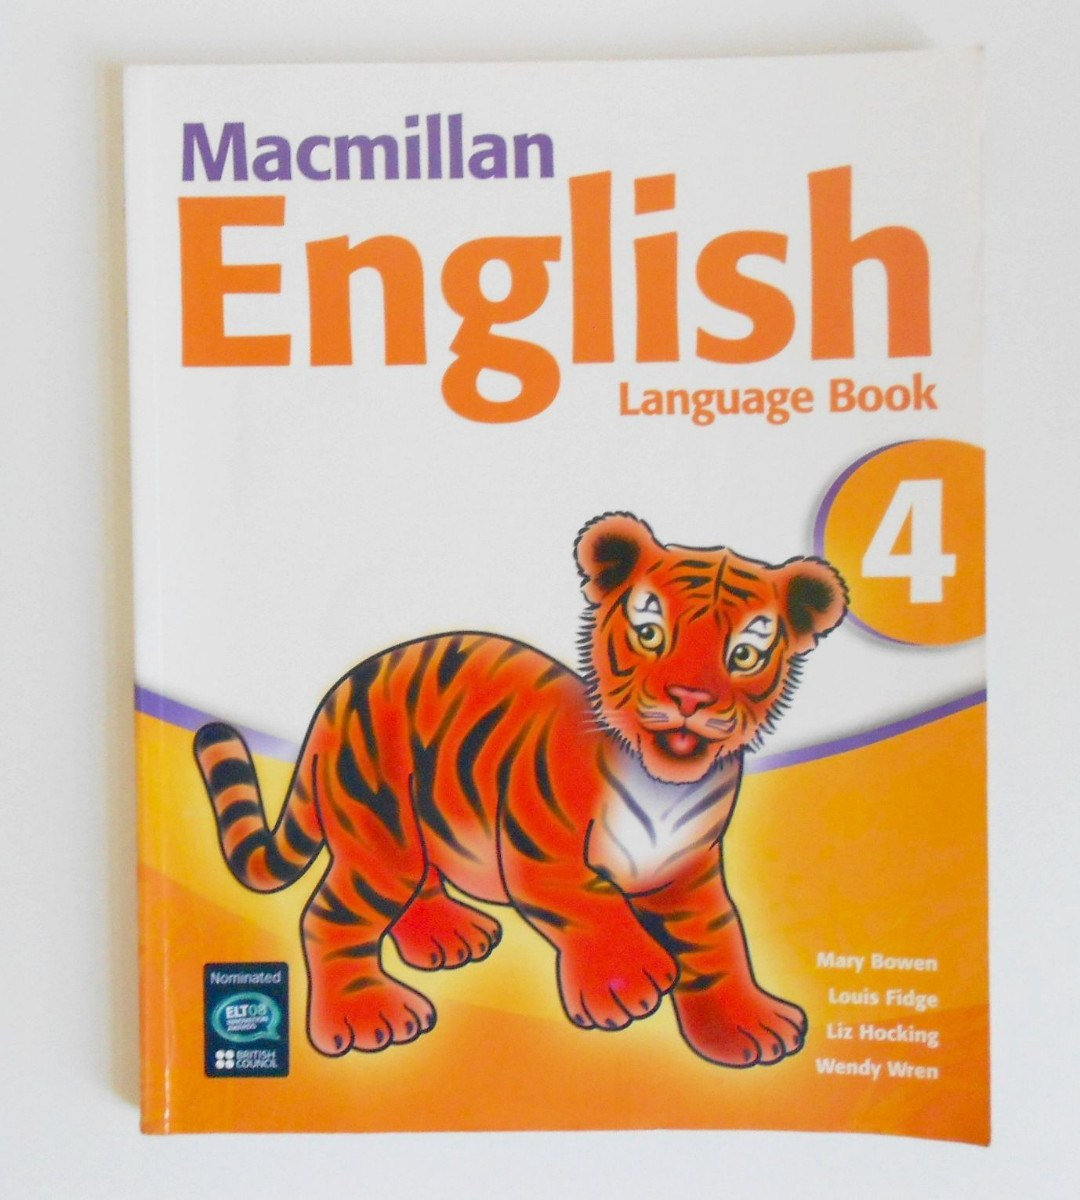 Libros De Macmillan Libro En Ingles English Language Book 4 Bowen Macmillan 129 60